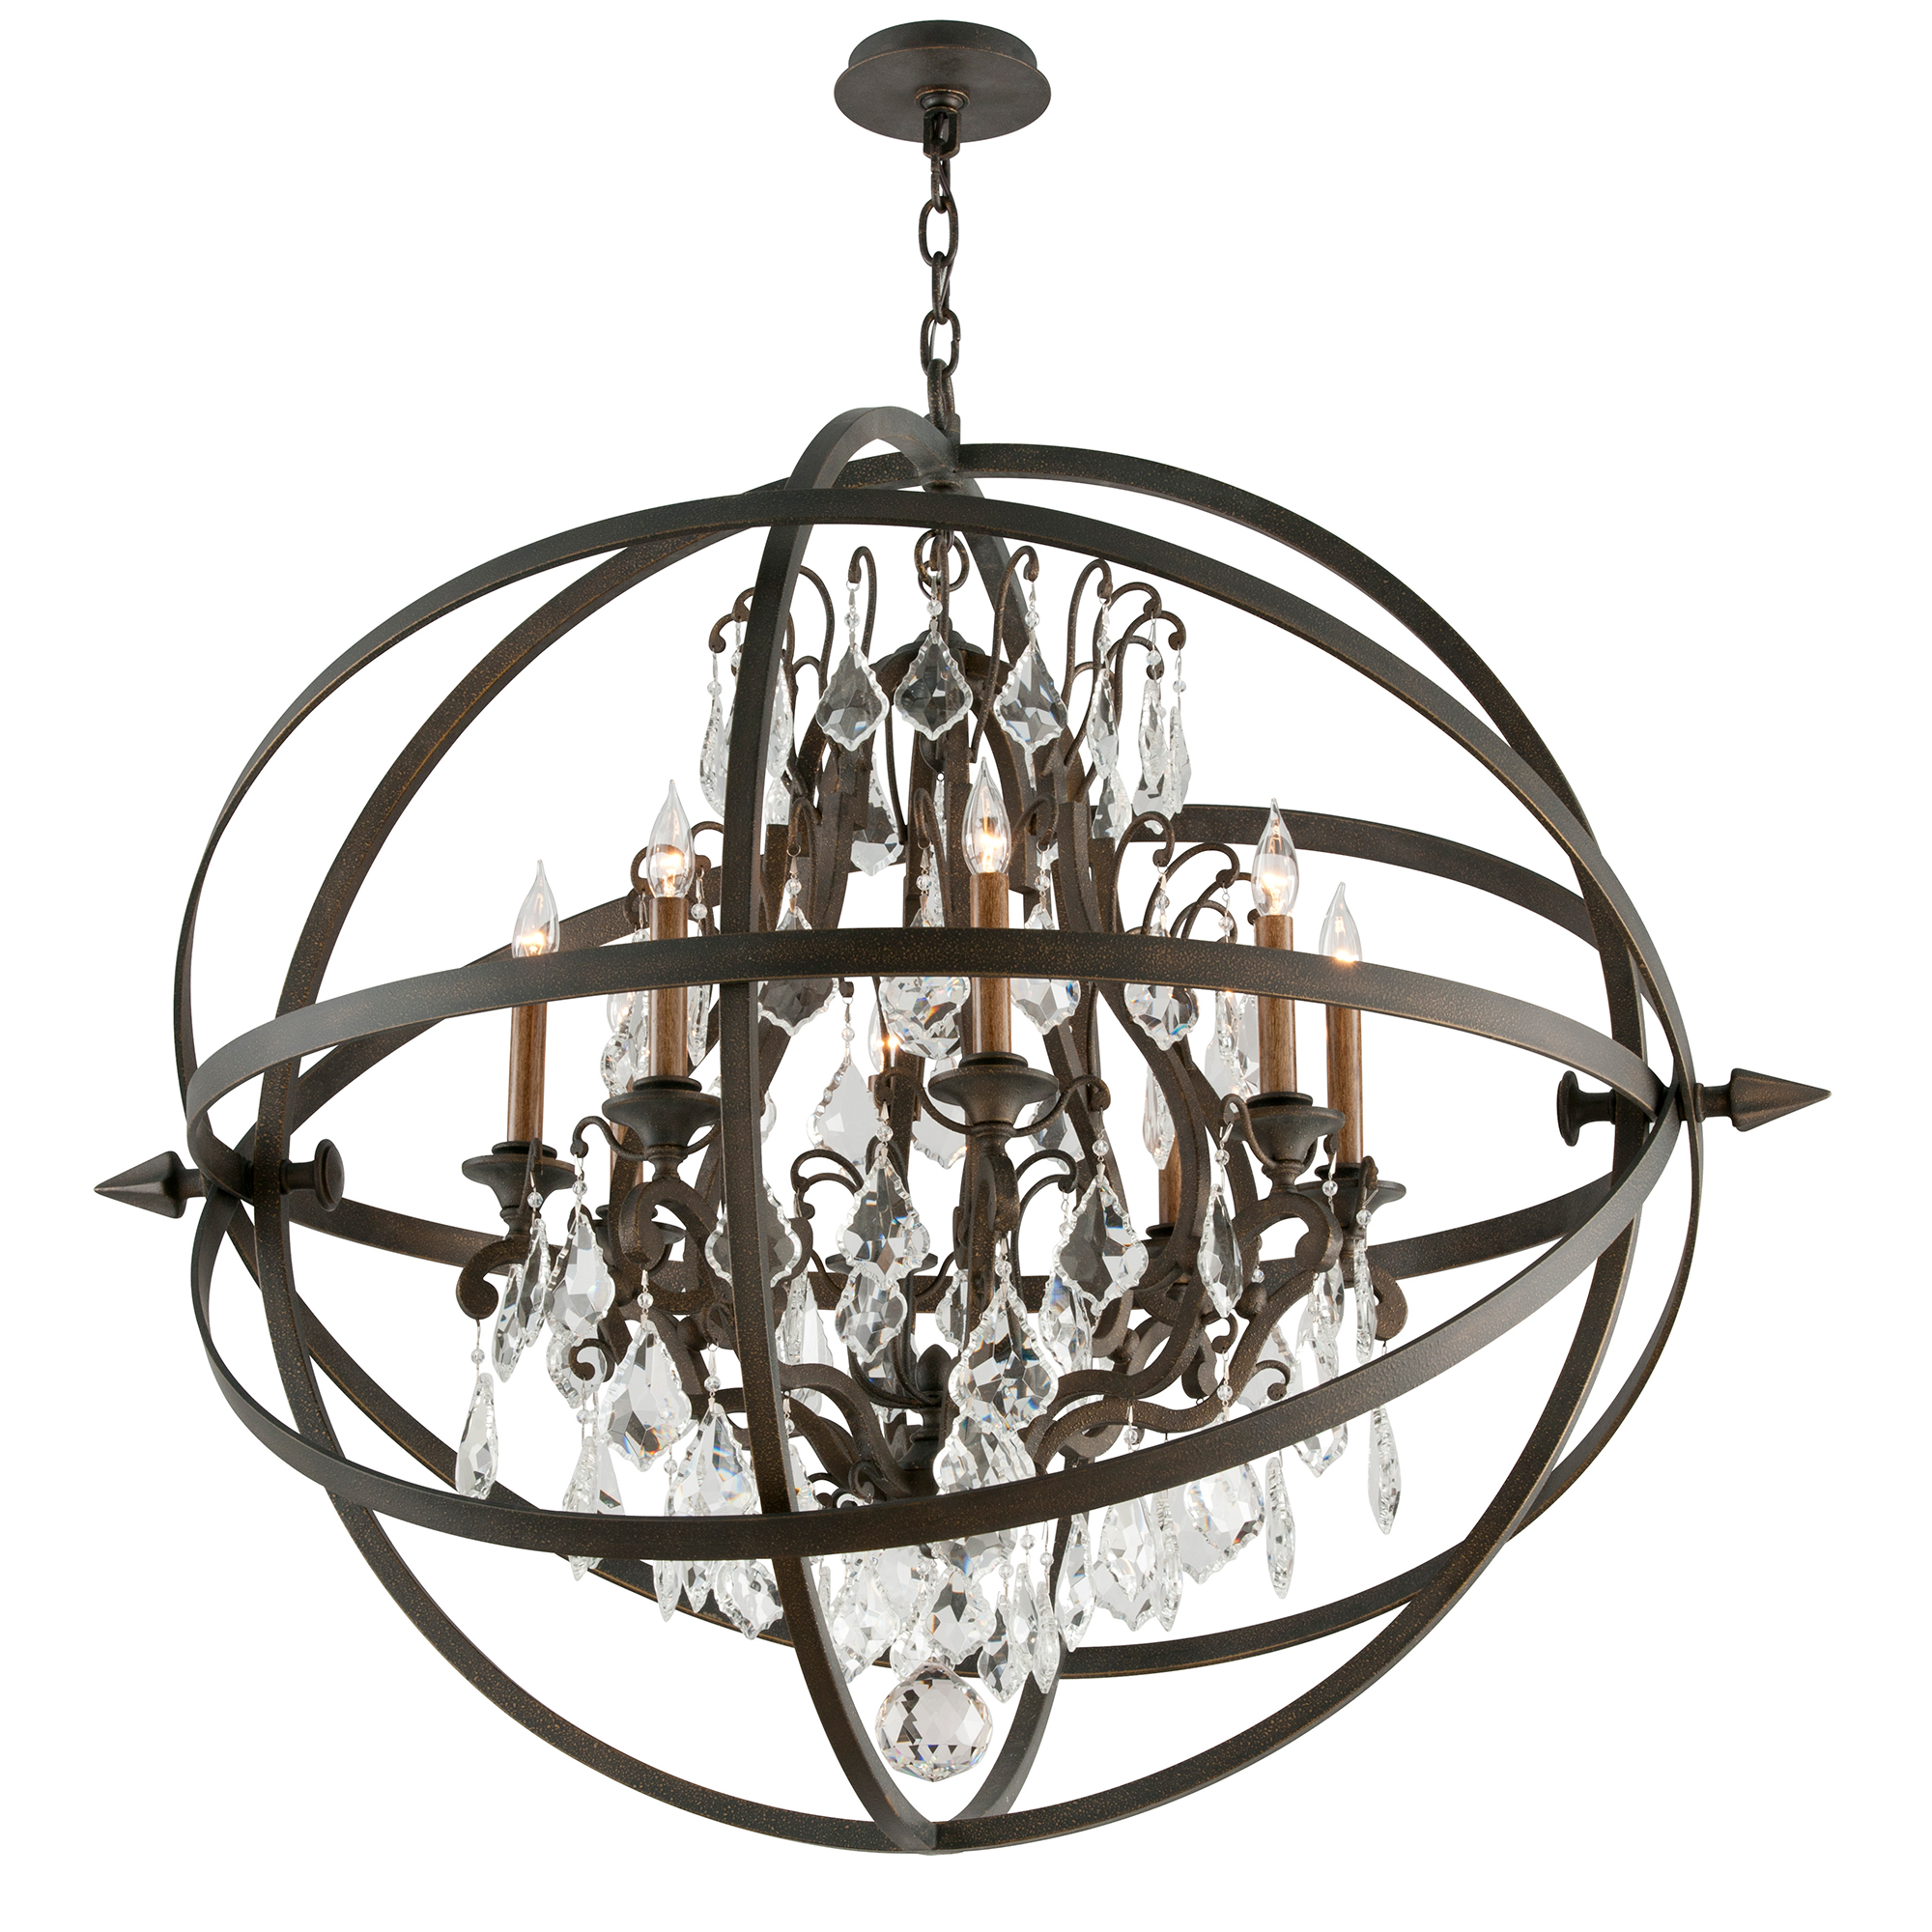 Byron pendant by troy lighting f2998 workwithnaturefo